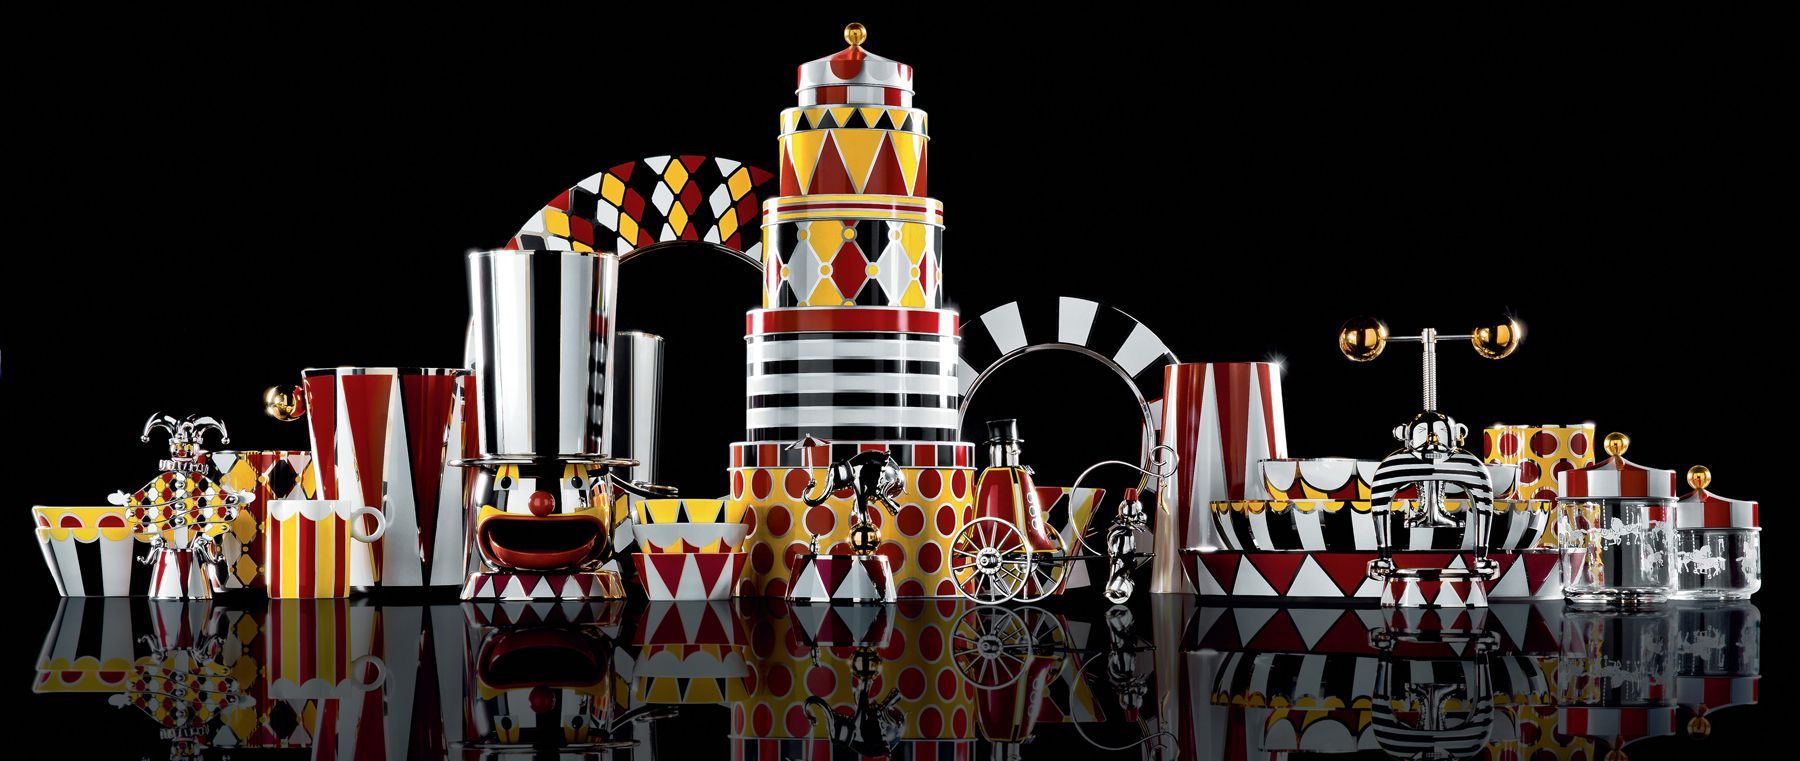 marcel wanders_alessi circus collection